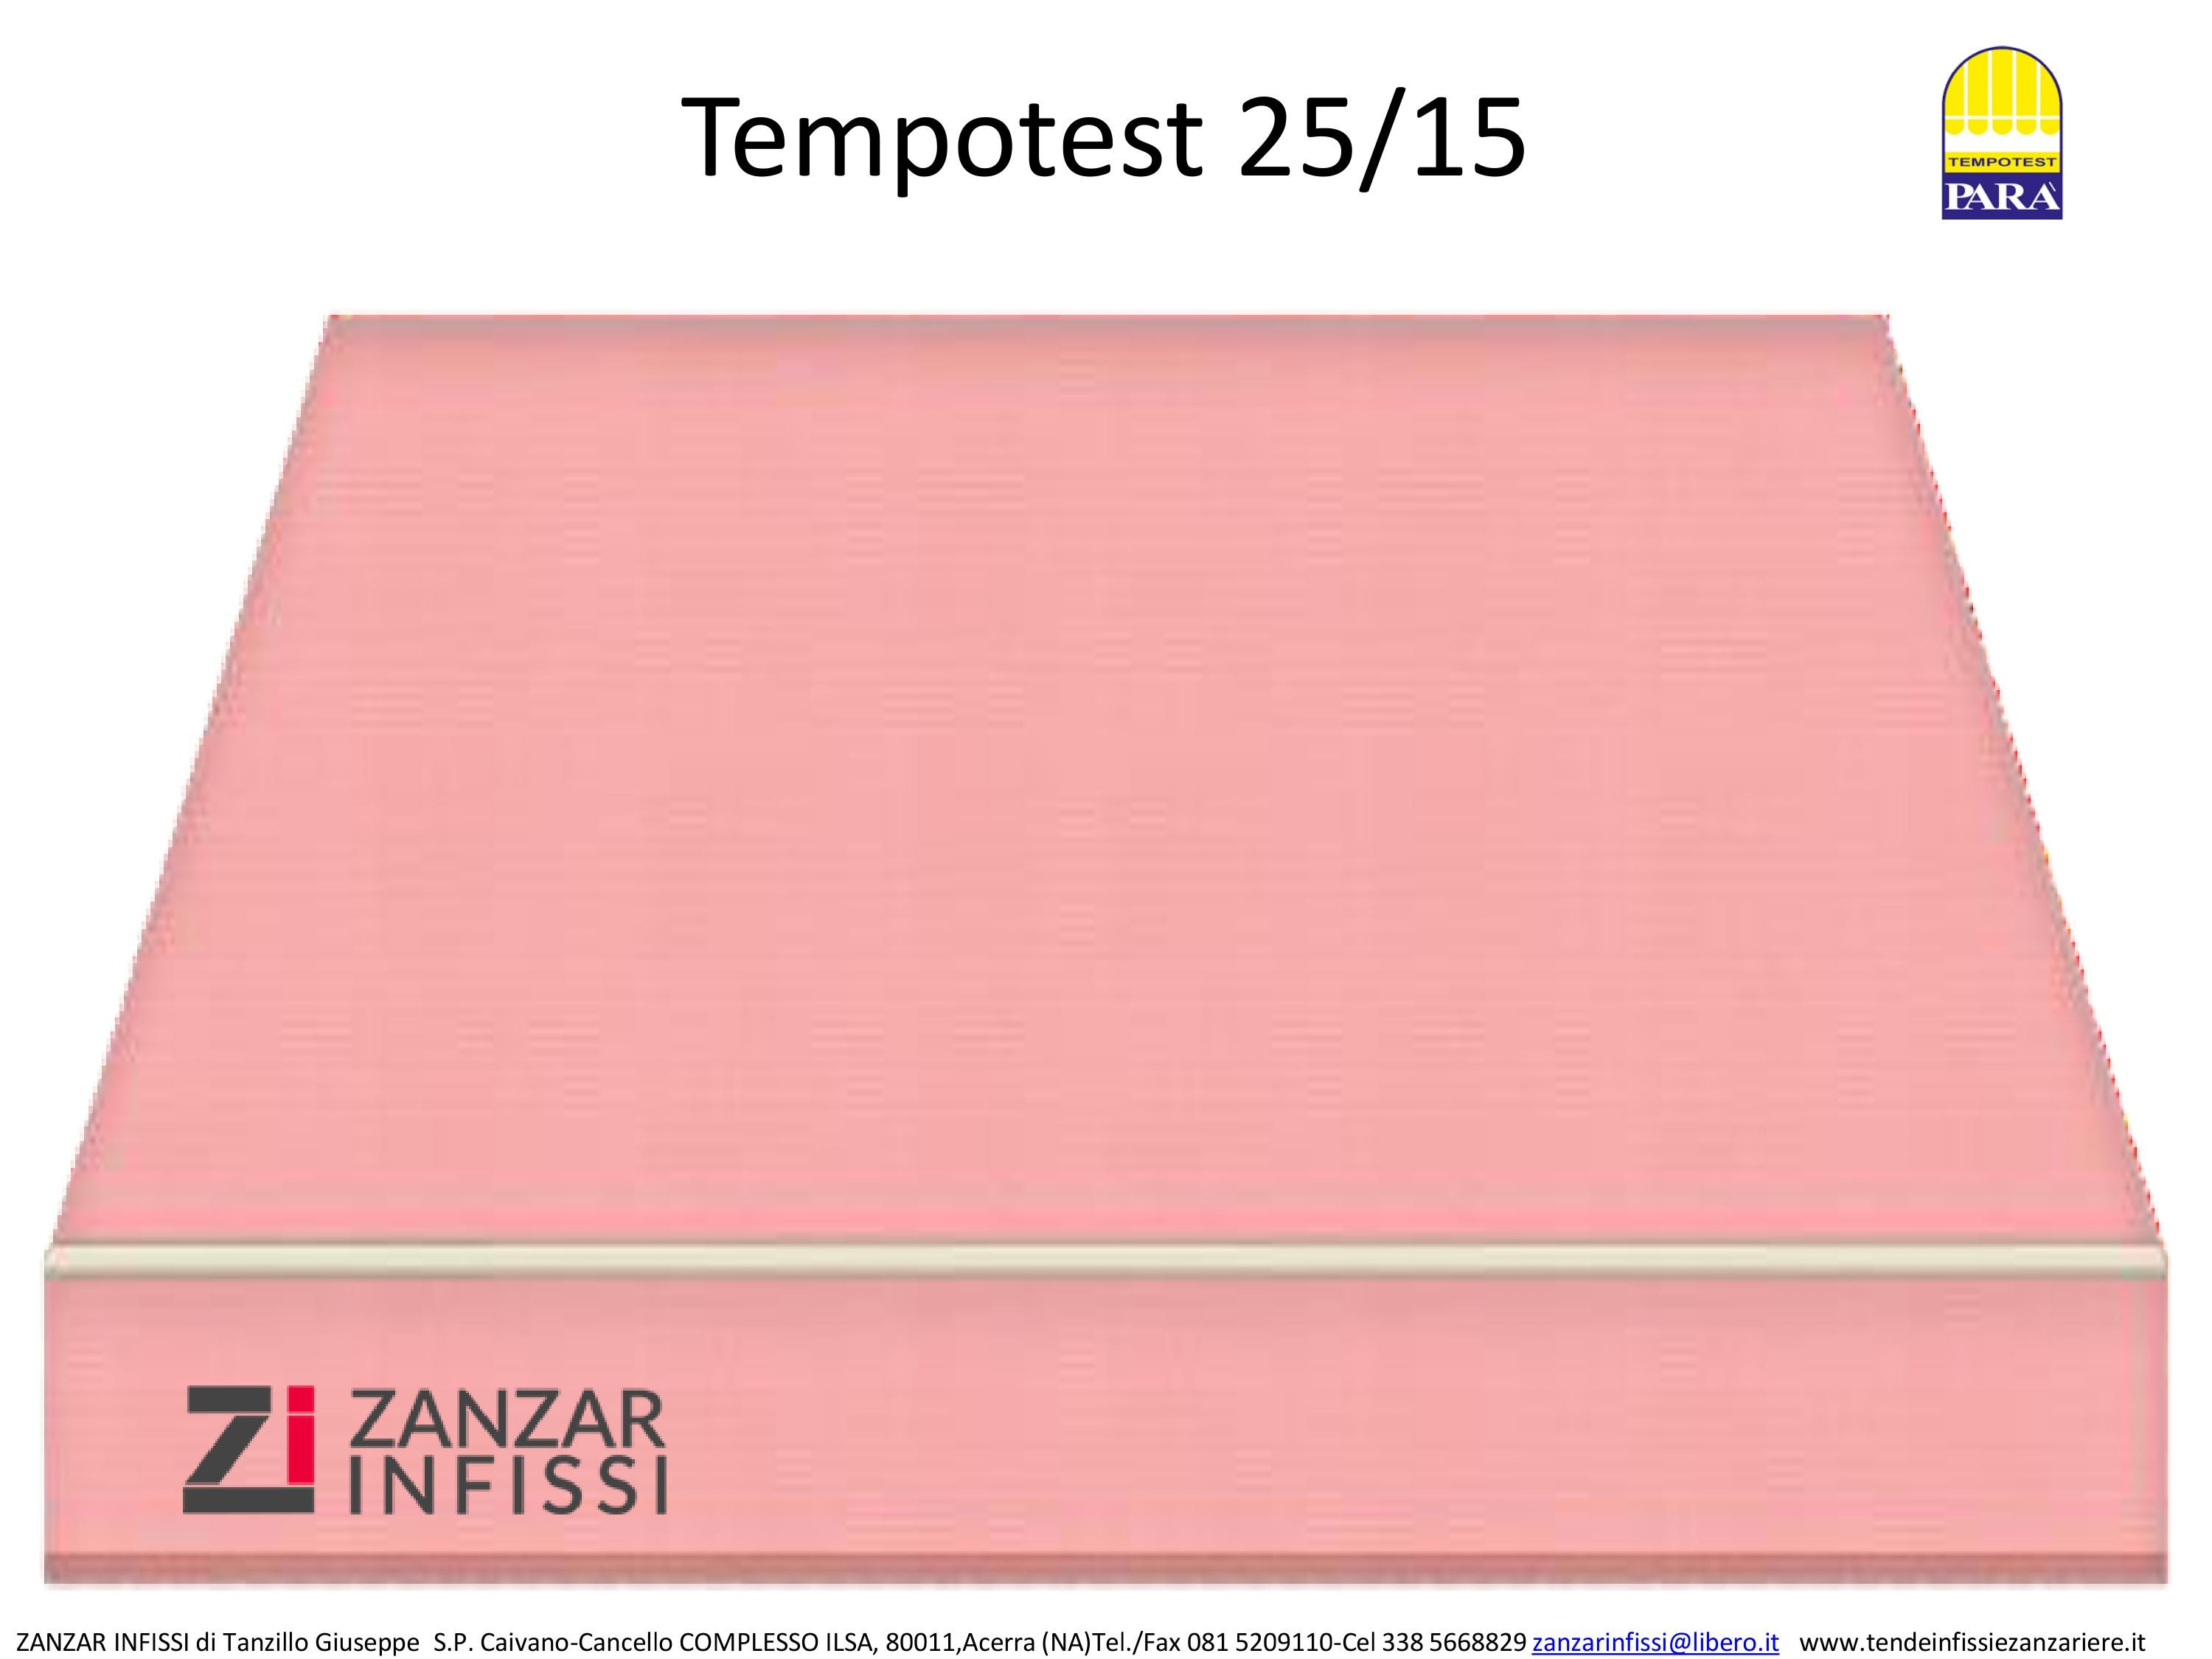 Tempotest 25/15